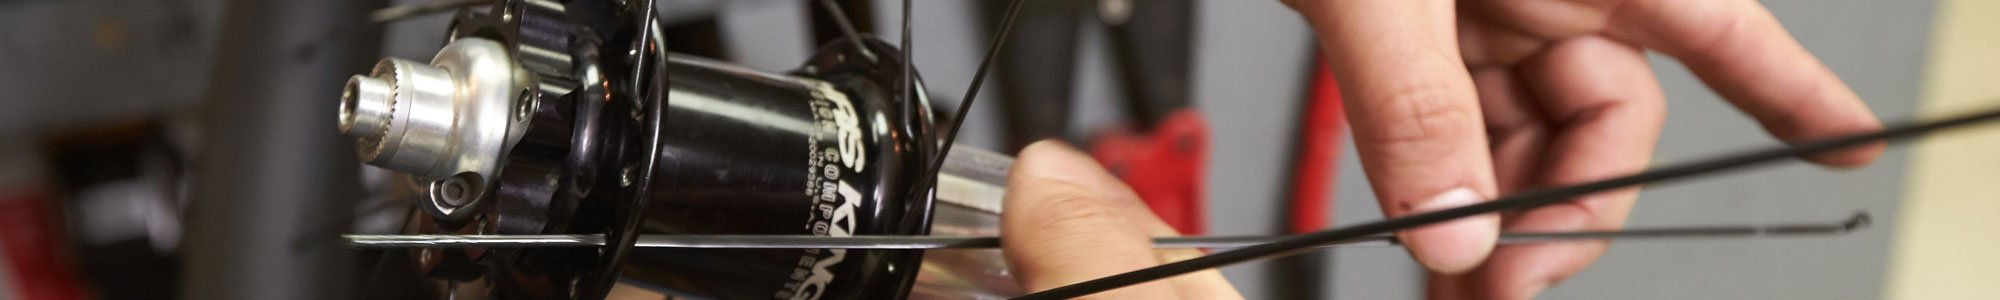 Eugene Bike Wheel Building Service